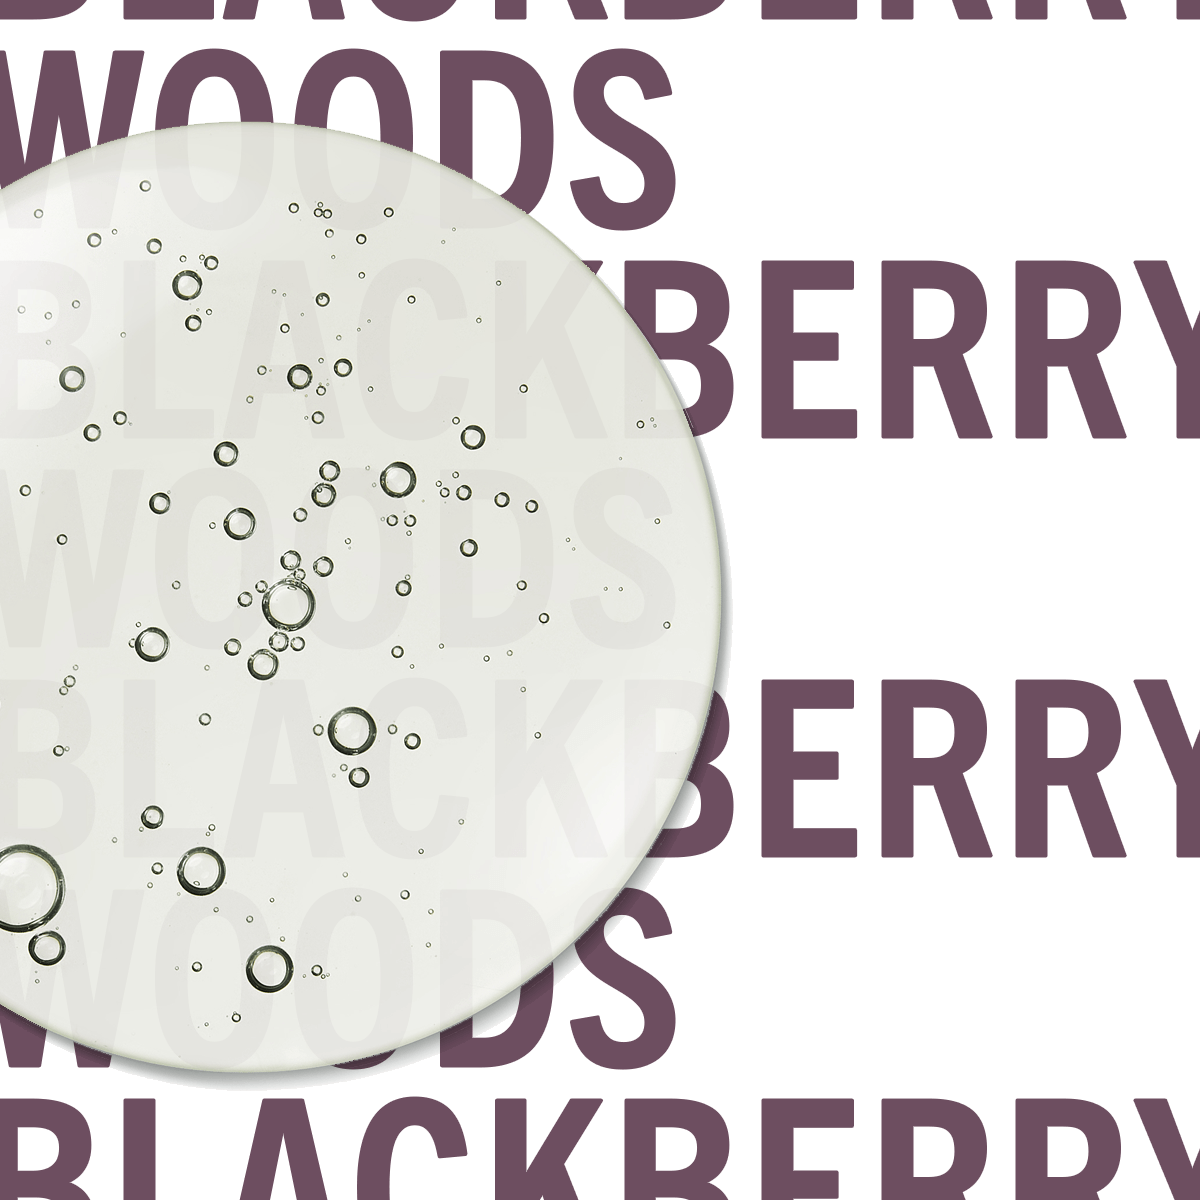 Blackberry Woods 250ml Hand & Body Wash | Glossy berry juice with punk-sharp citrus. | Clean All Gender Fragrance | Shay & Blue